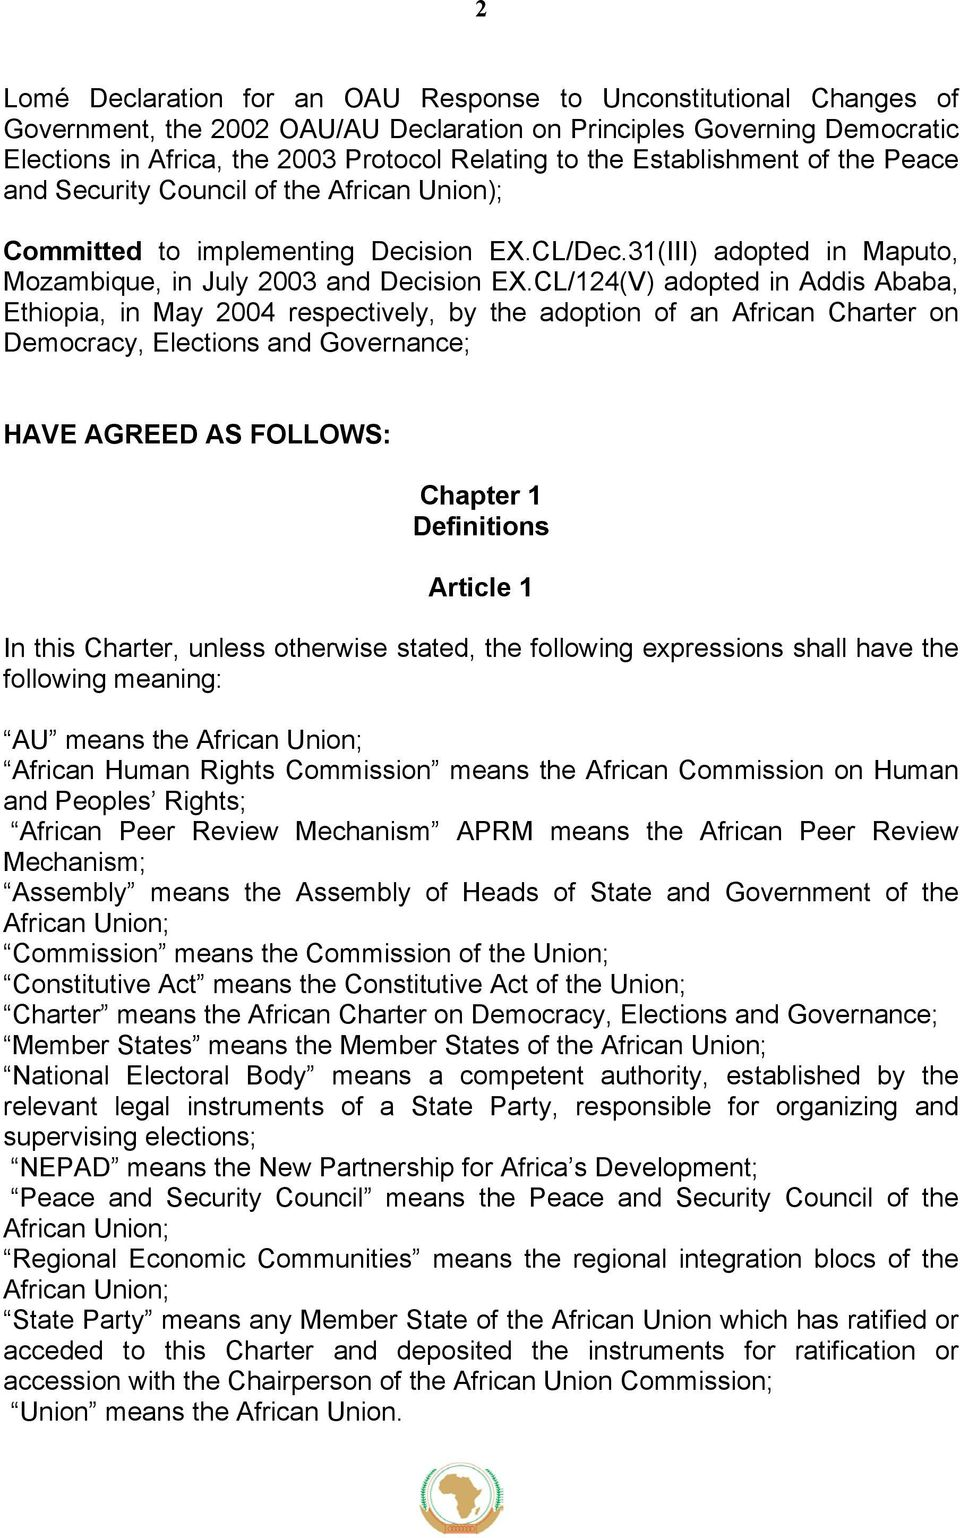 CL/124(V) adopted in Addis Ababa, Ethiopia, in May 2004 respectively, by the adoption of an African Charter on Democracy, Elections and Governance; HAVE AGREED AS FOLLOWS: Chapter 1 Definitions